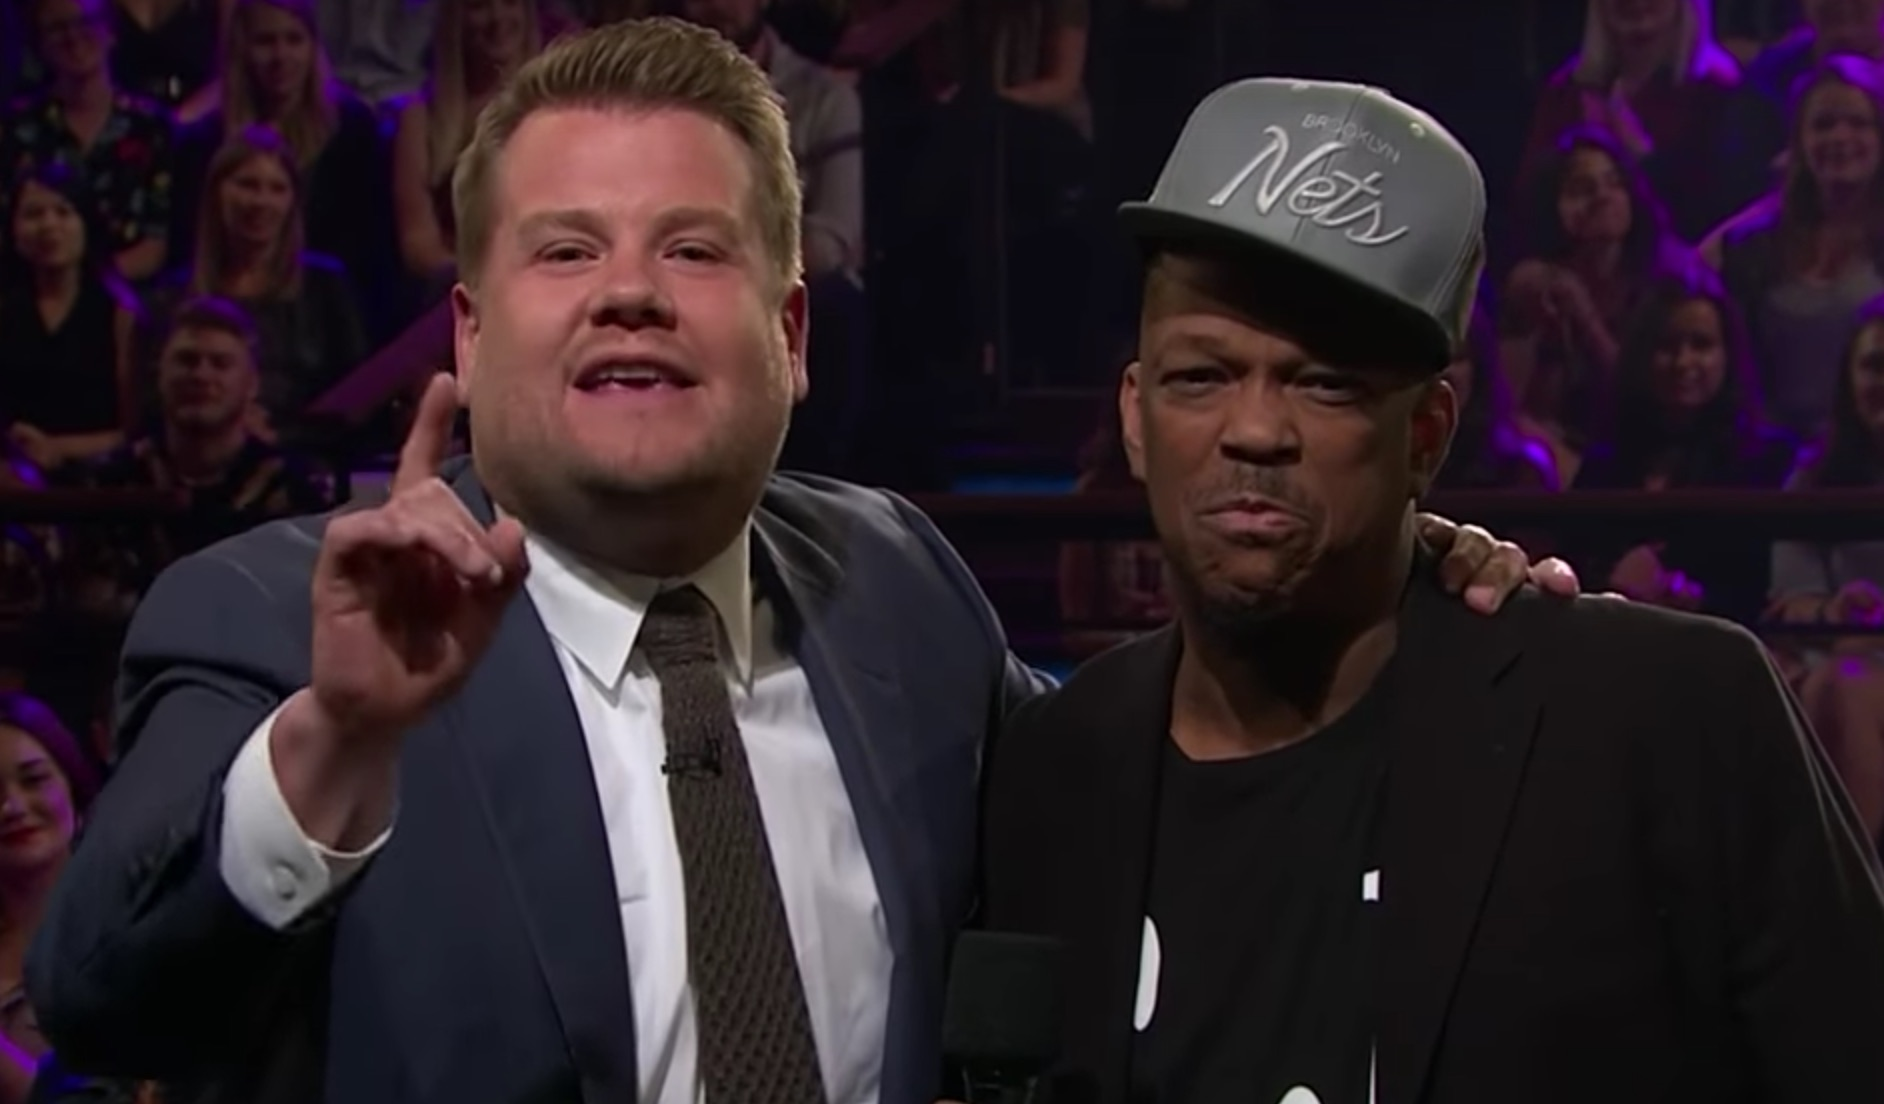 James Corden brought the viral subway singer with a golden voice on his show and we have goosebumps